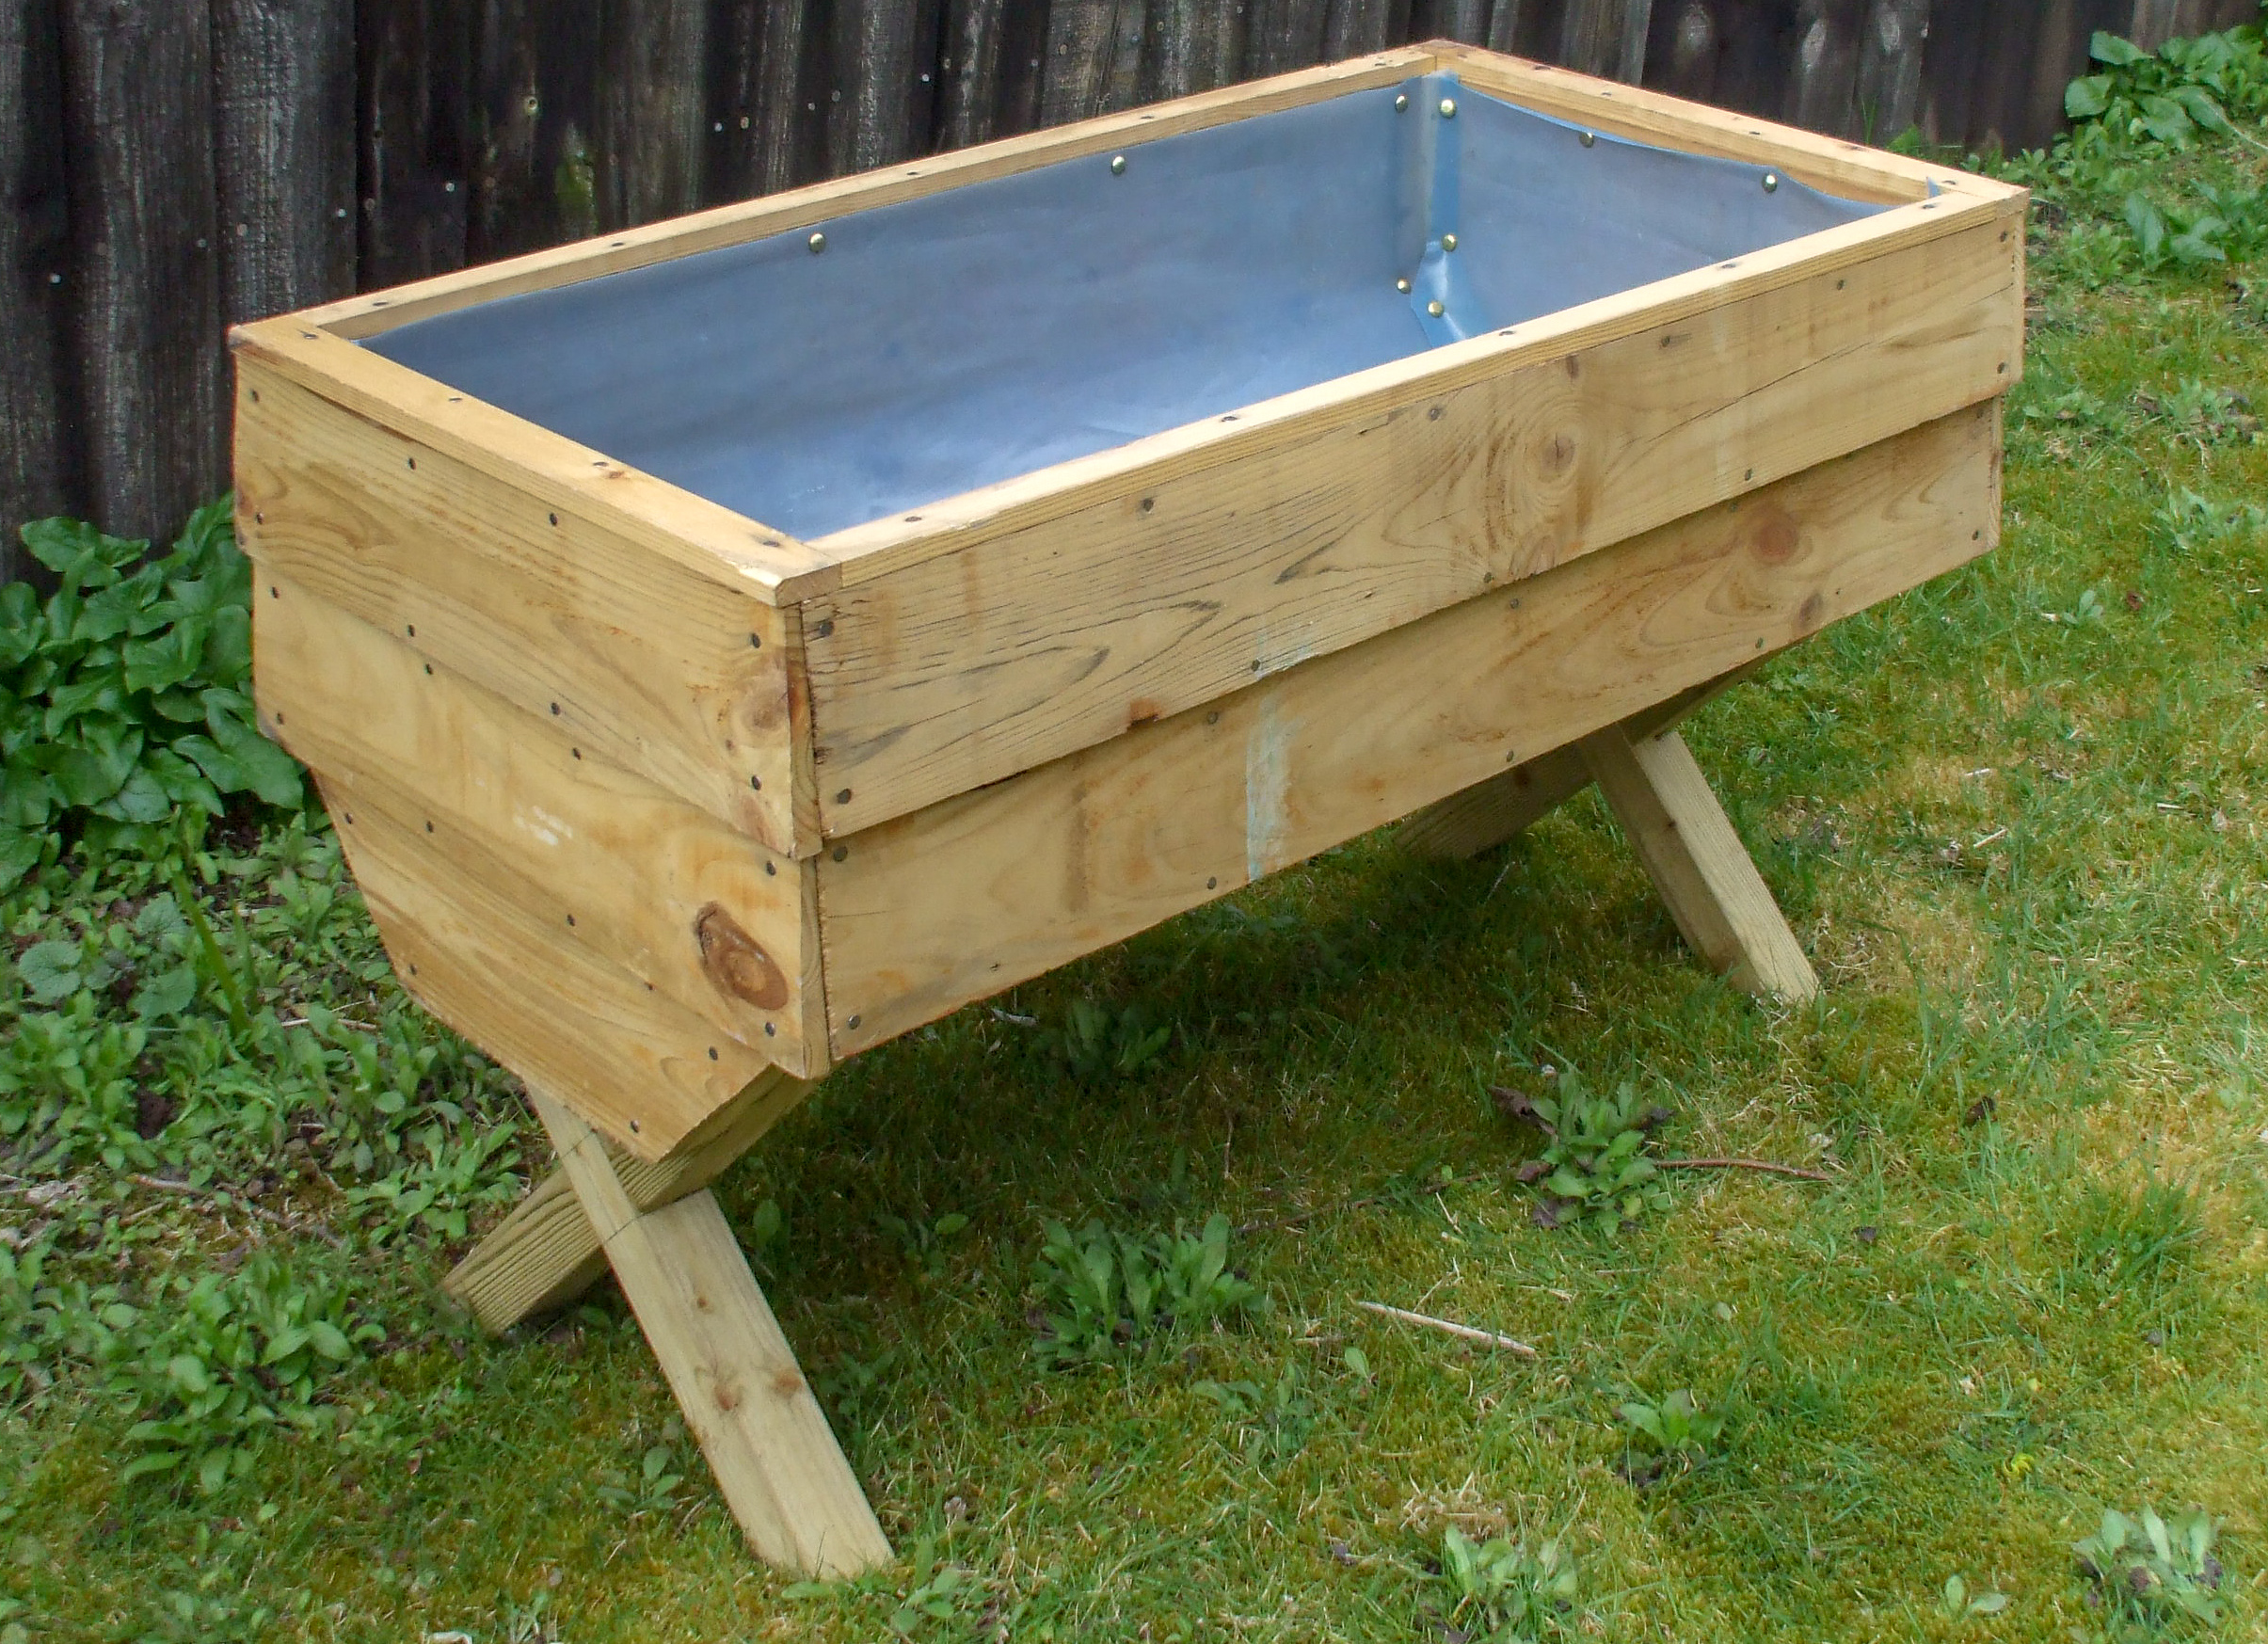 Plant / Vegetable Trough - go to   Gallery   for larger photos